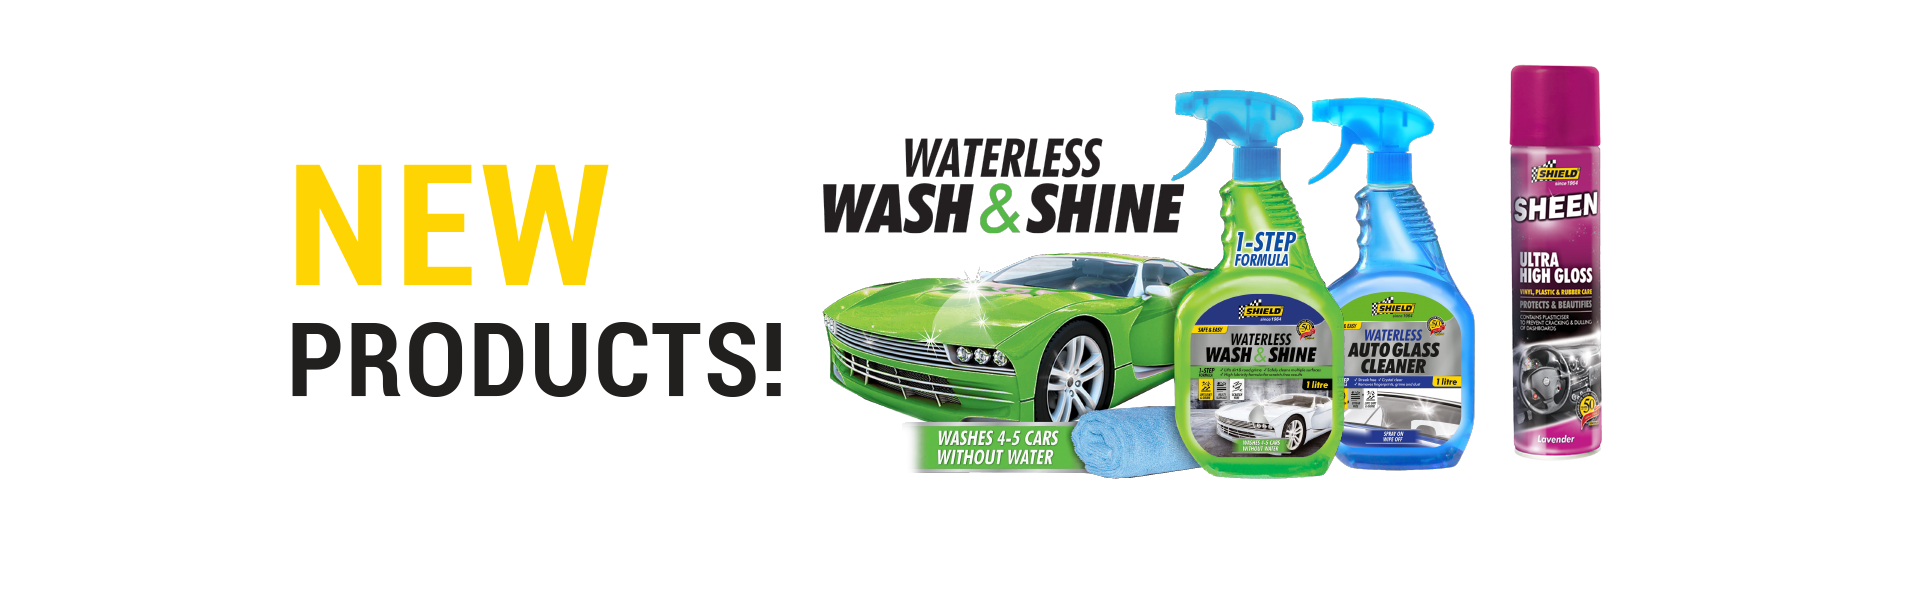 Waterless Car Wash Products South Africa 2017 2018 Best Cars Reviews